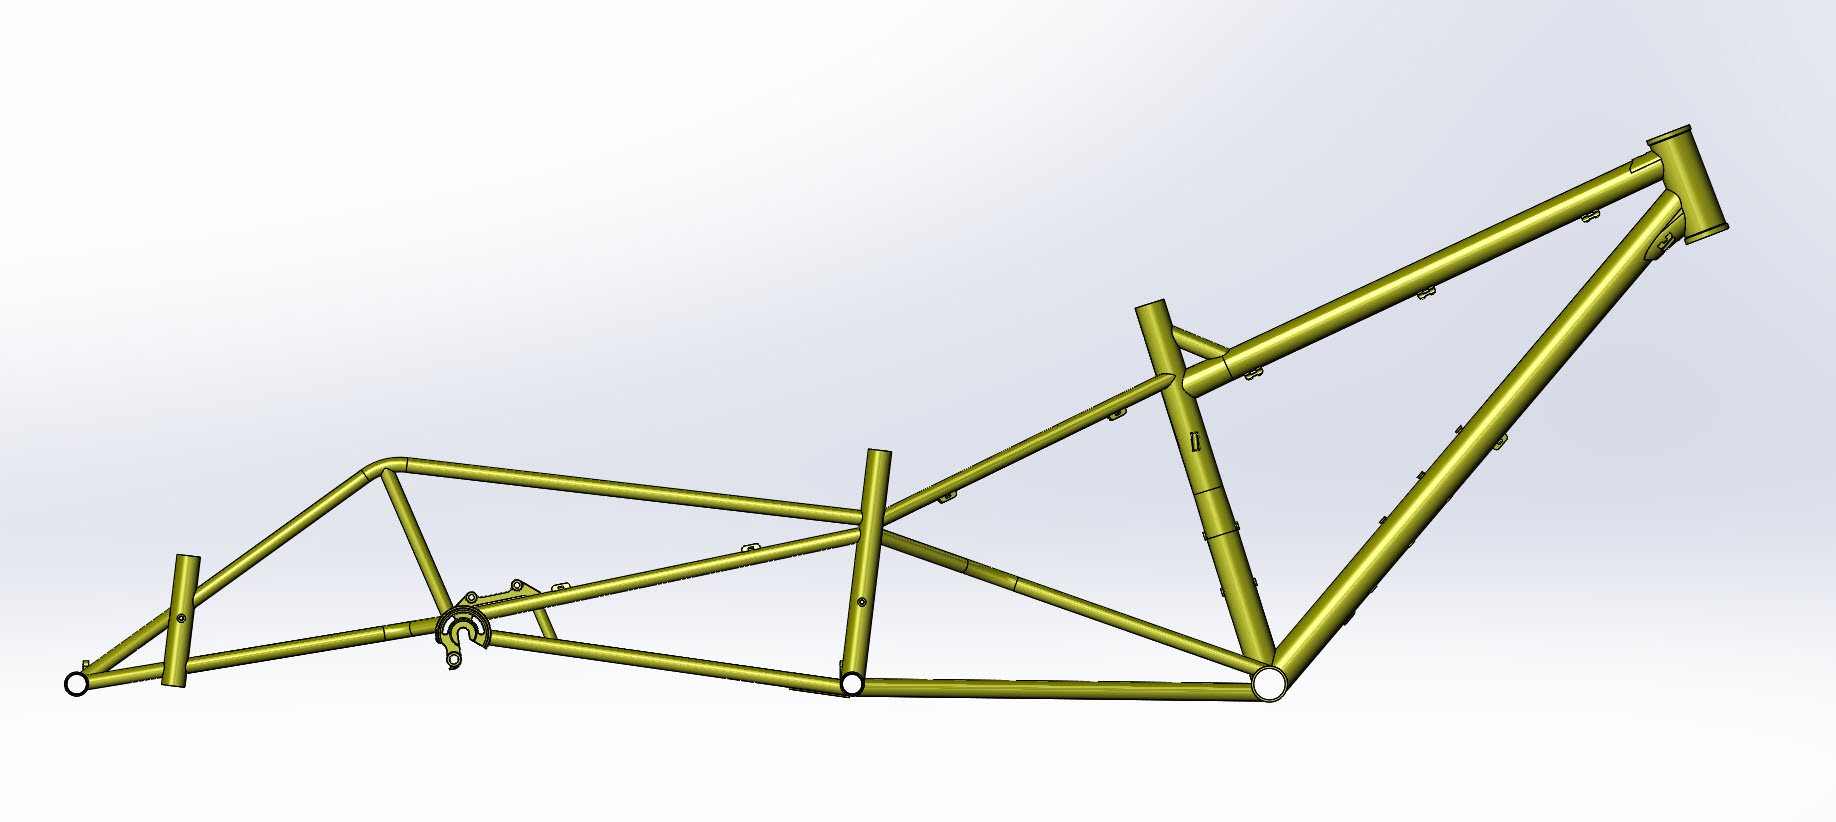 CAD illustration of a Surly Bike Fat Dummy bike frame - right side view